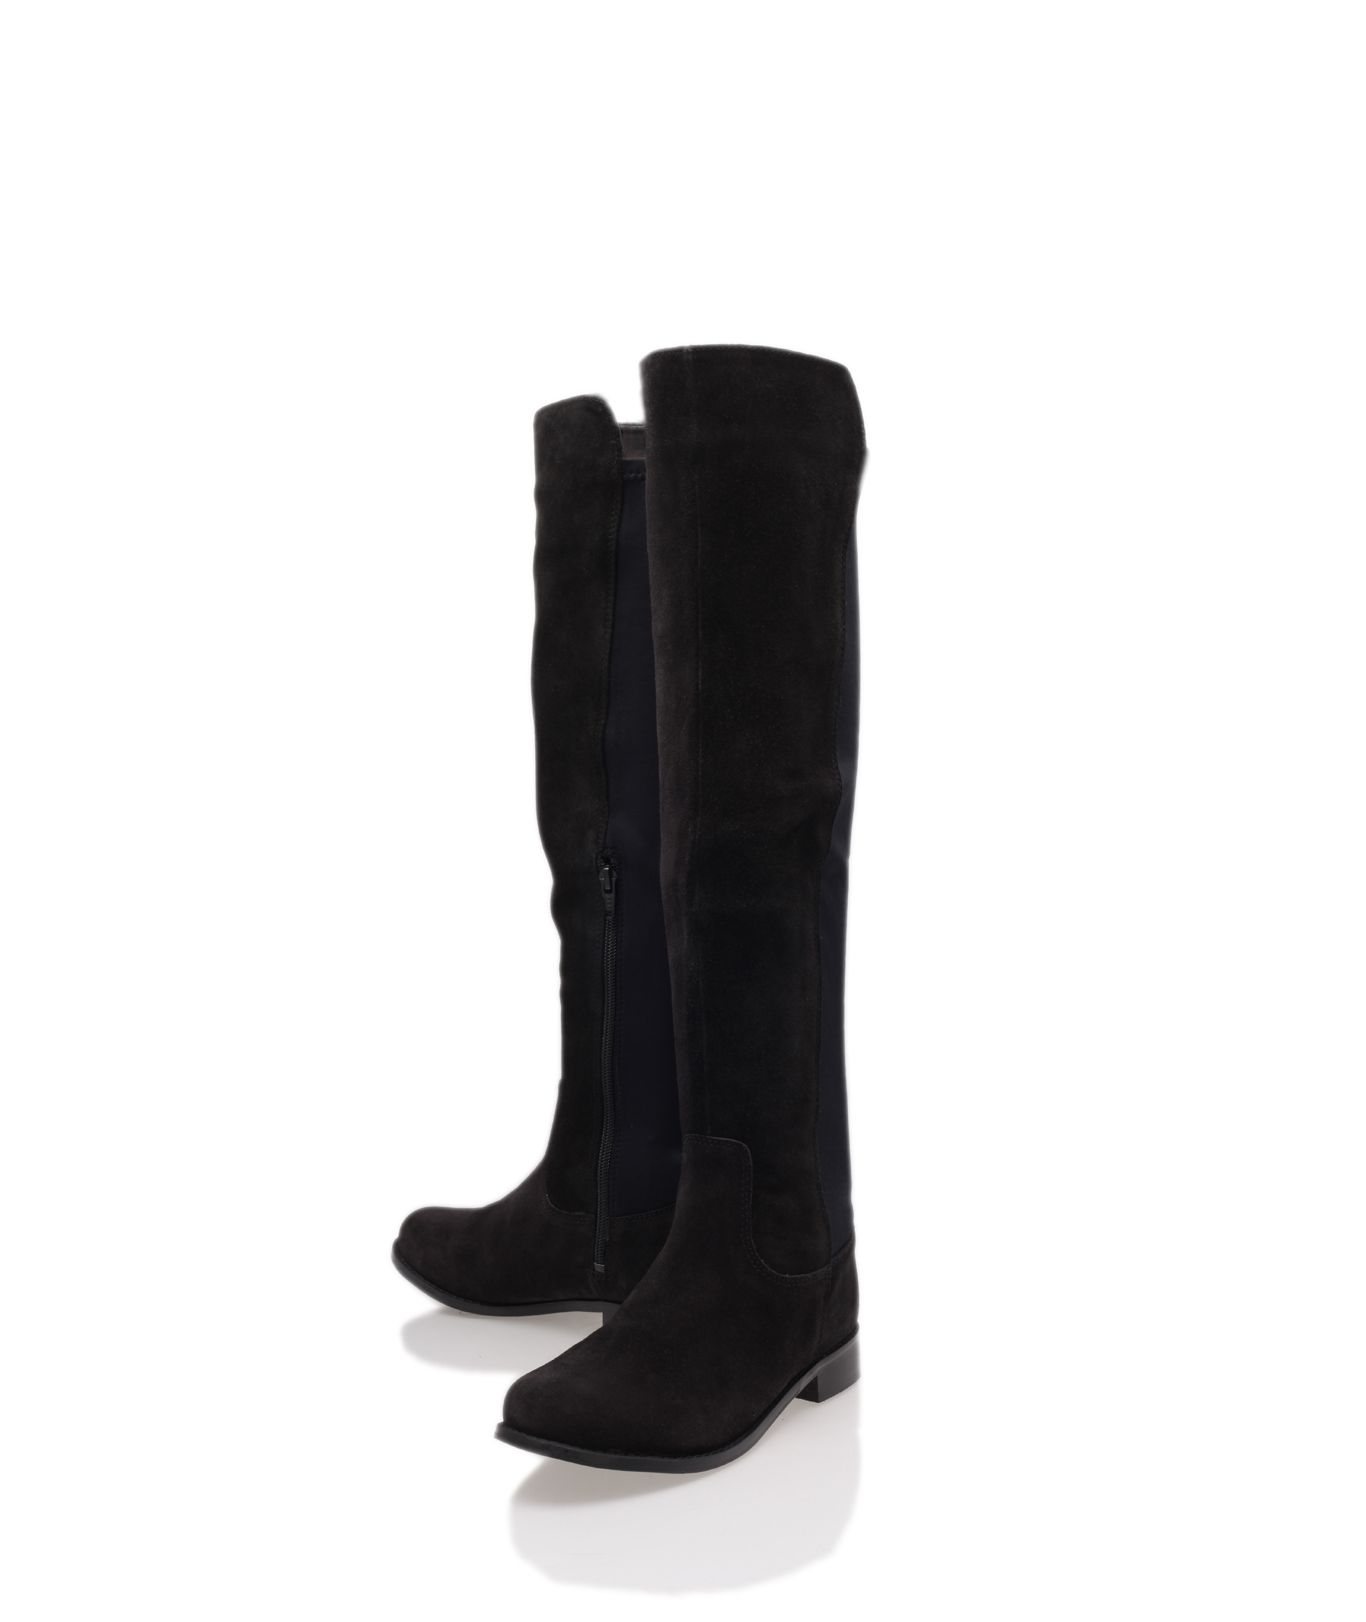 Peggy suede over the knee flat boots